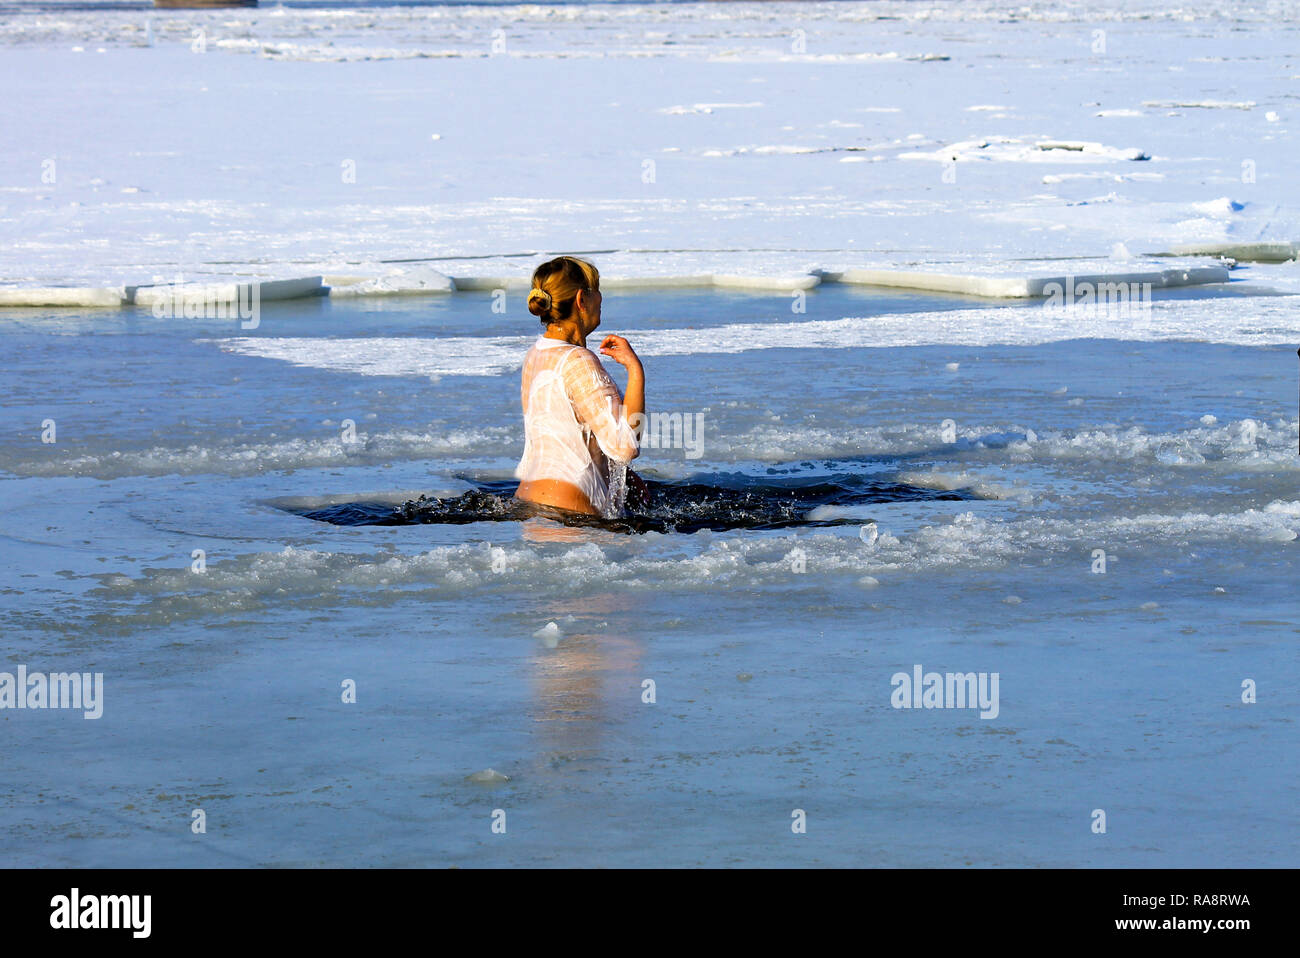 Winter sport. A woman swims in the winter river covered with ice during the holiday of Epiphany. Hardening - Stock Image